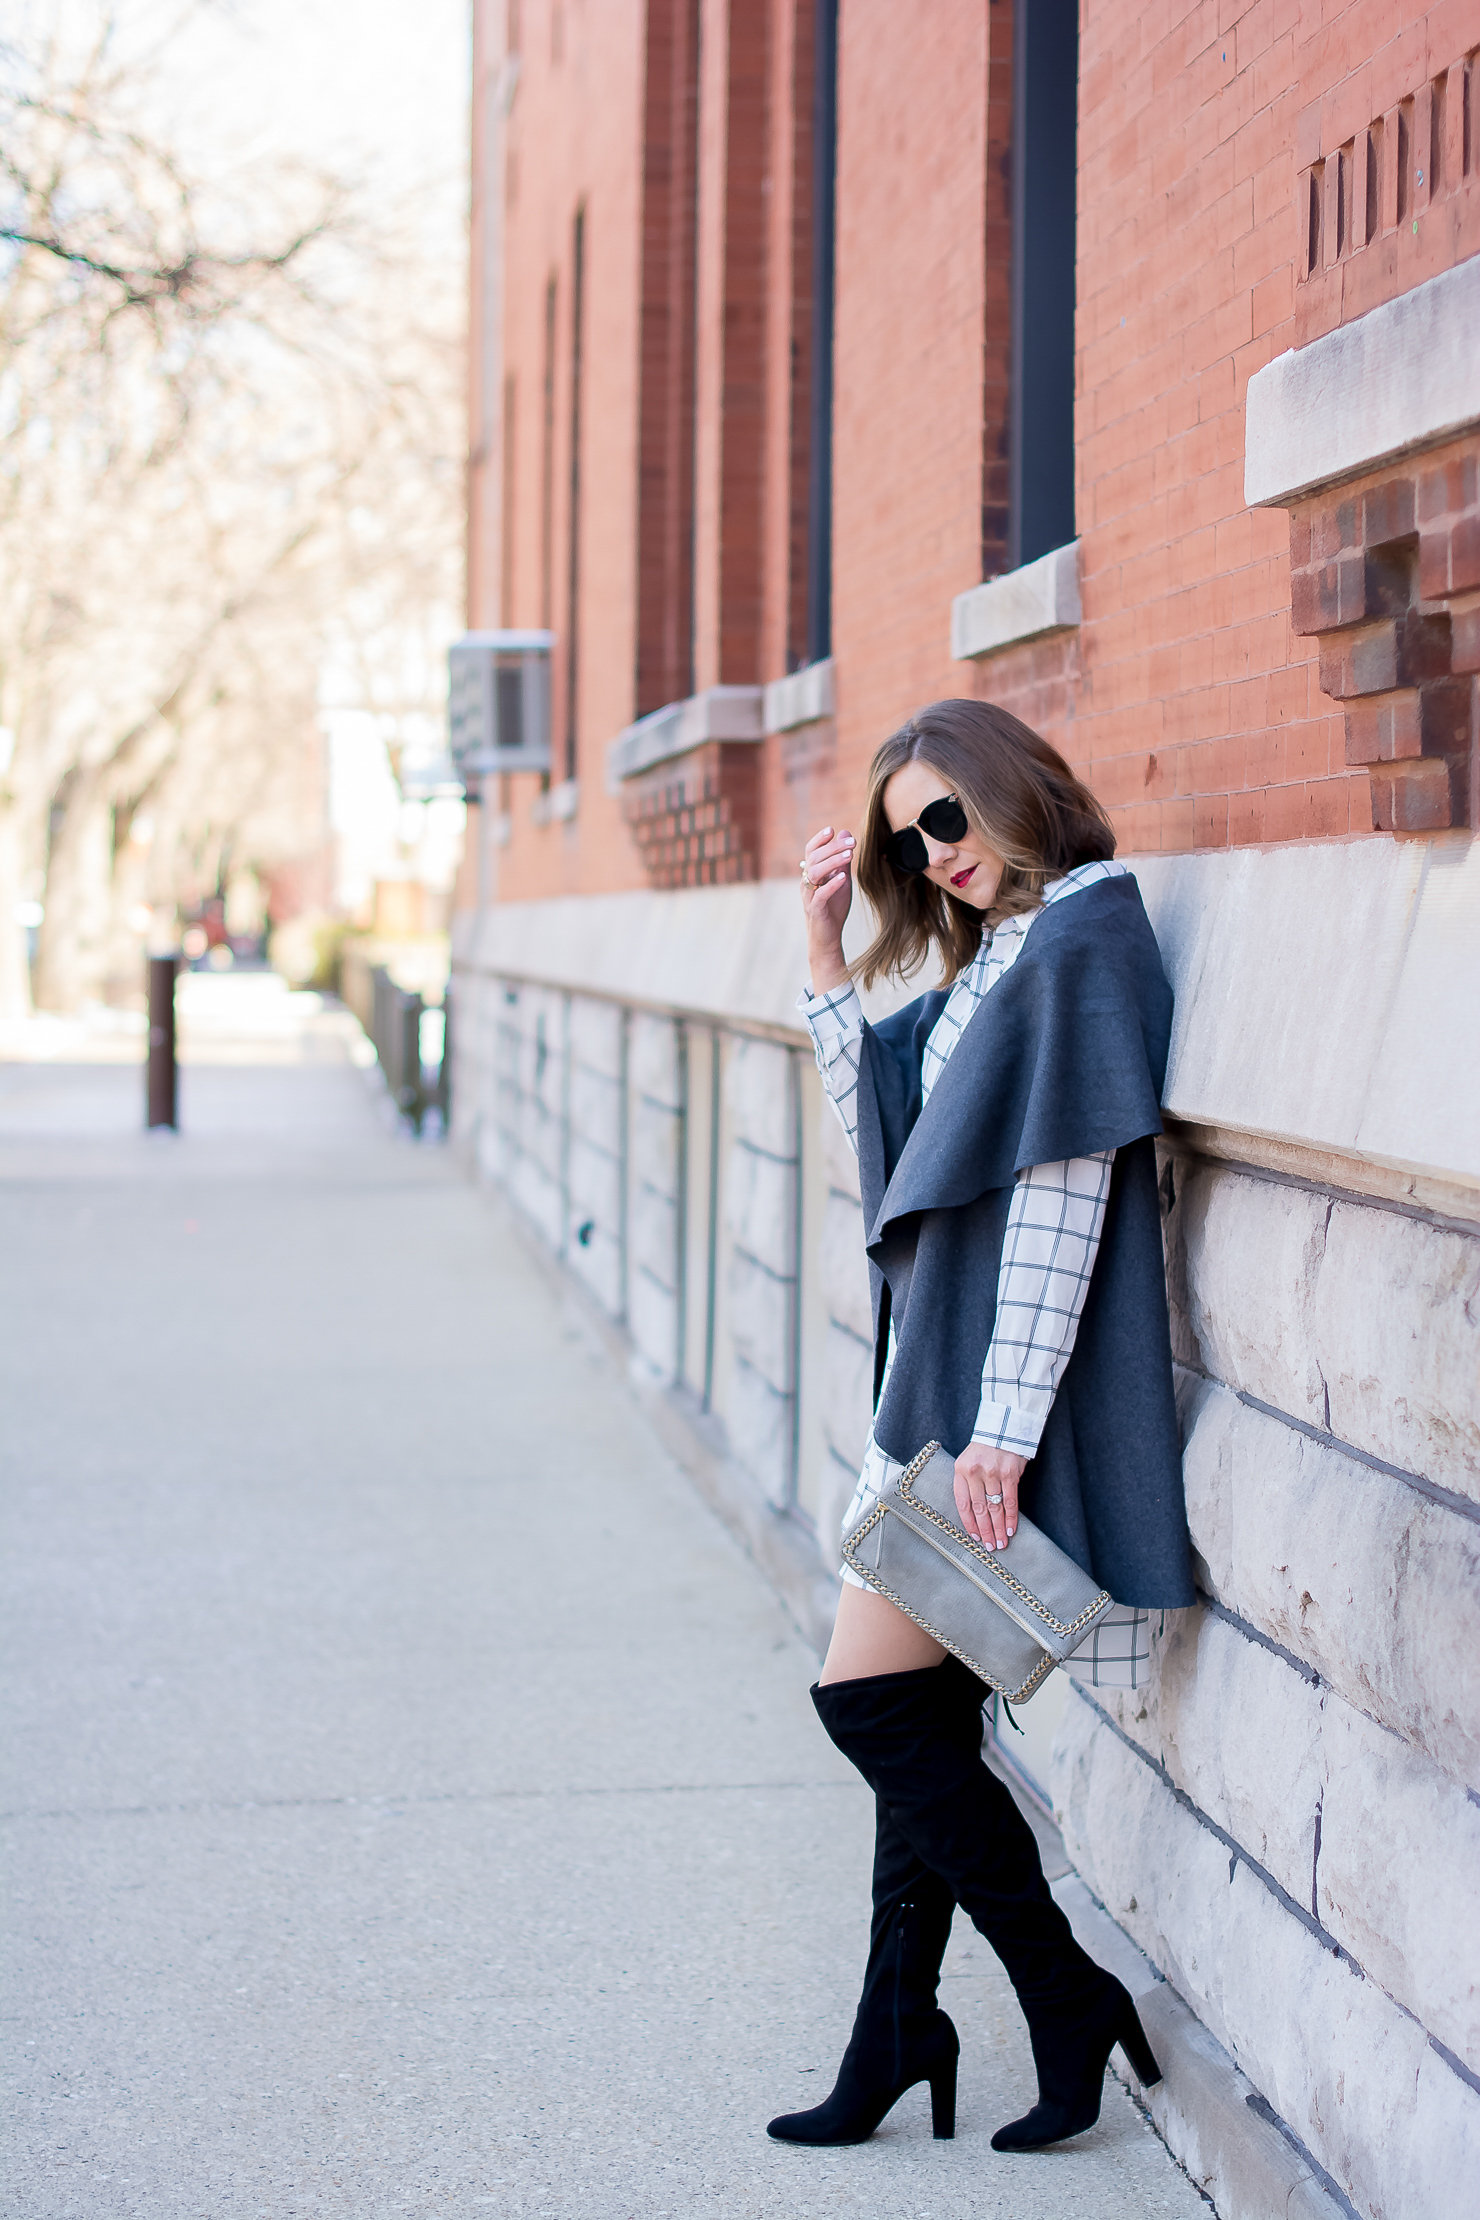 target grid print shirt dress, shein grey felt vest, steve madden gorgeous over the knee boots, karen walker harvest sunglasses, urban expressions grey chain clutch